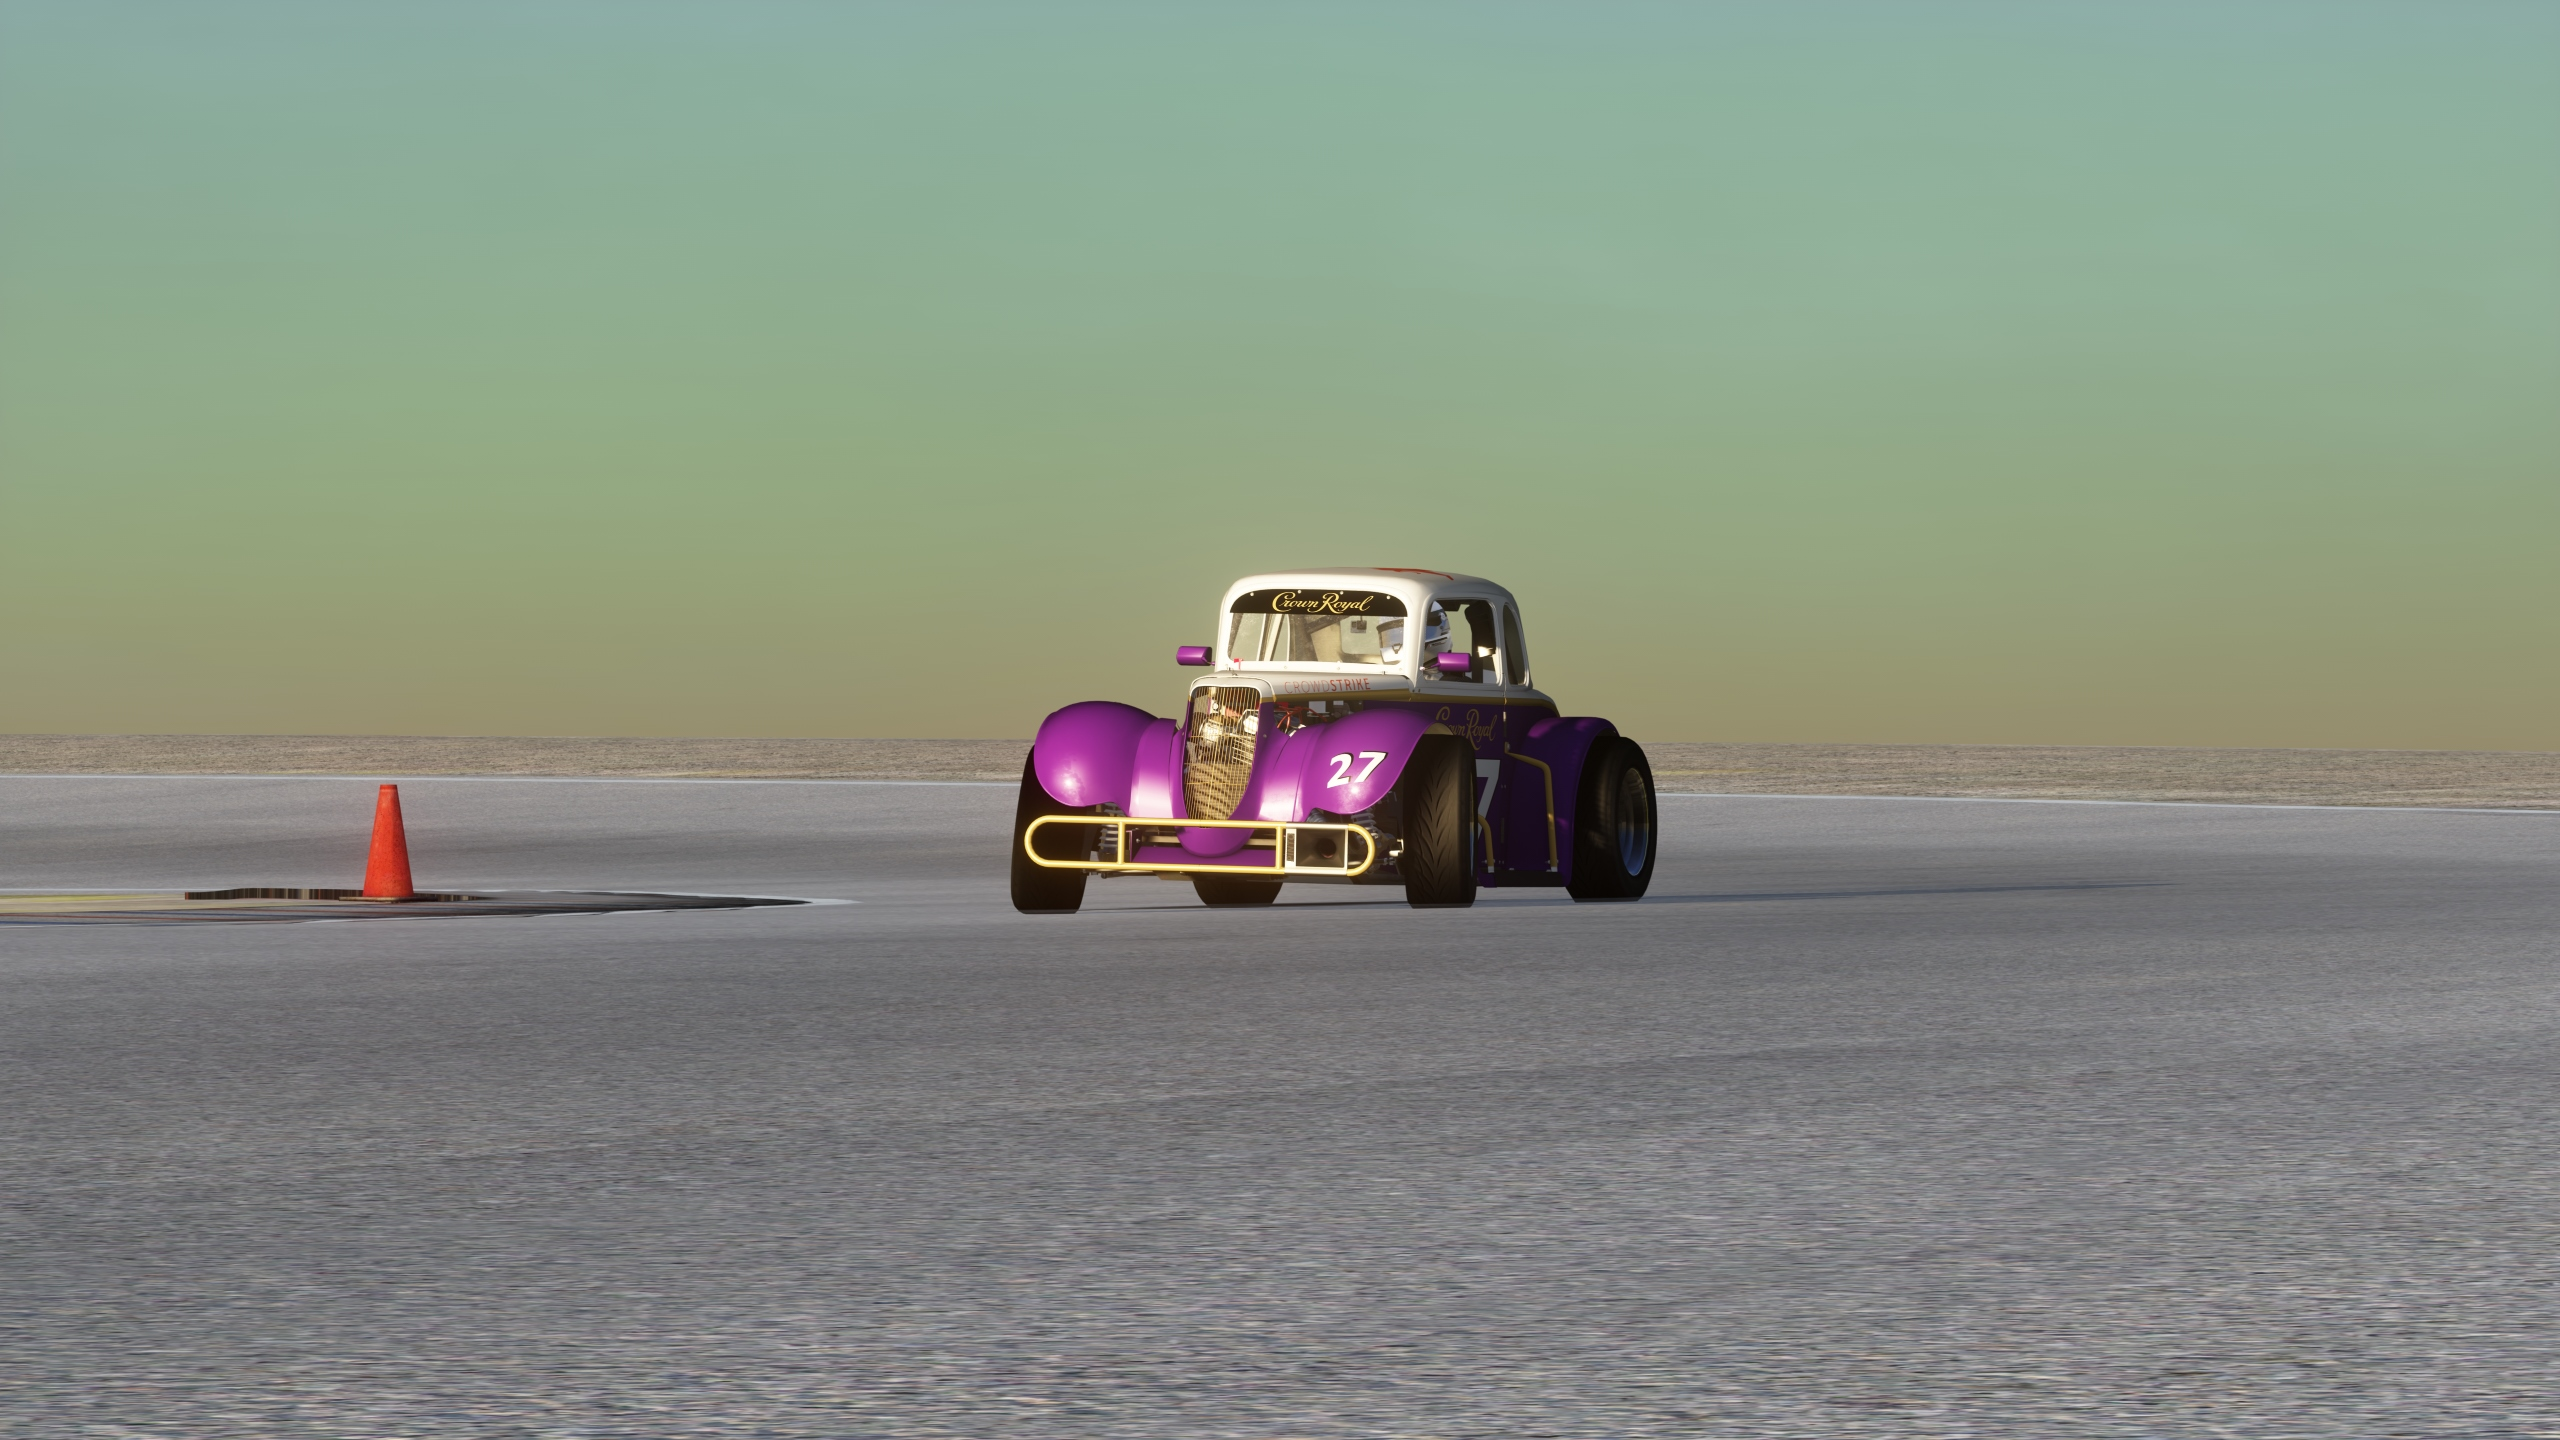 Screenshot_legends_ford_34_coupe_simtraxx_bw_8-1-120-21-58-17.jpg